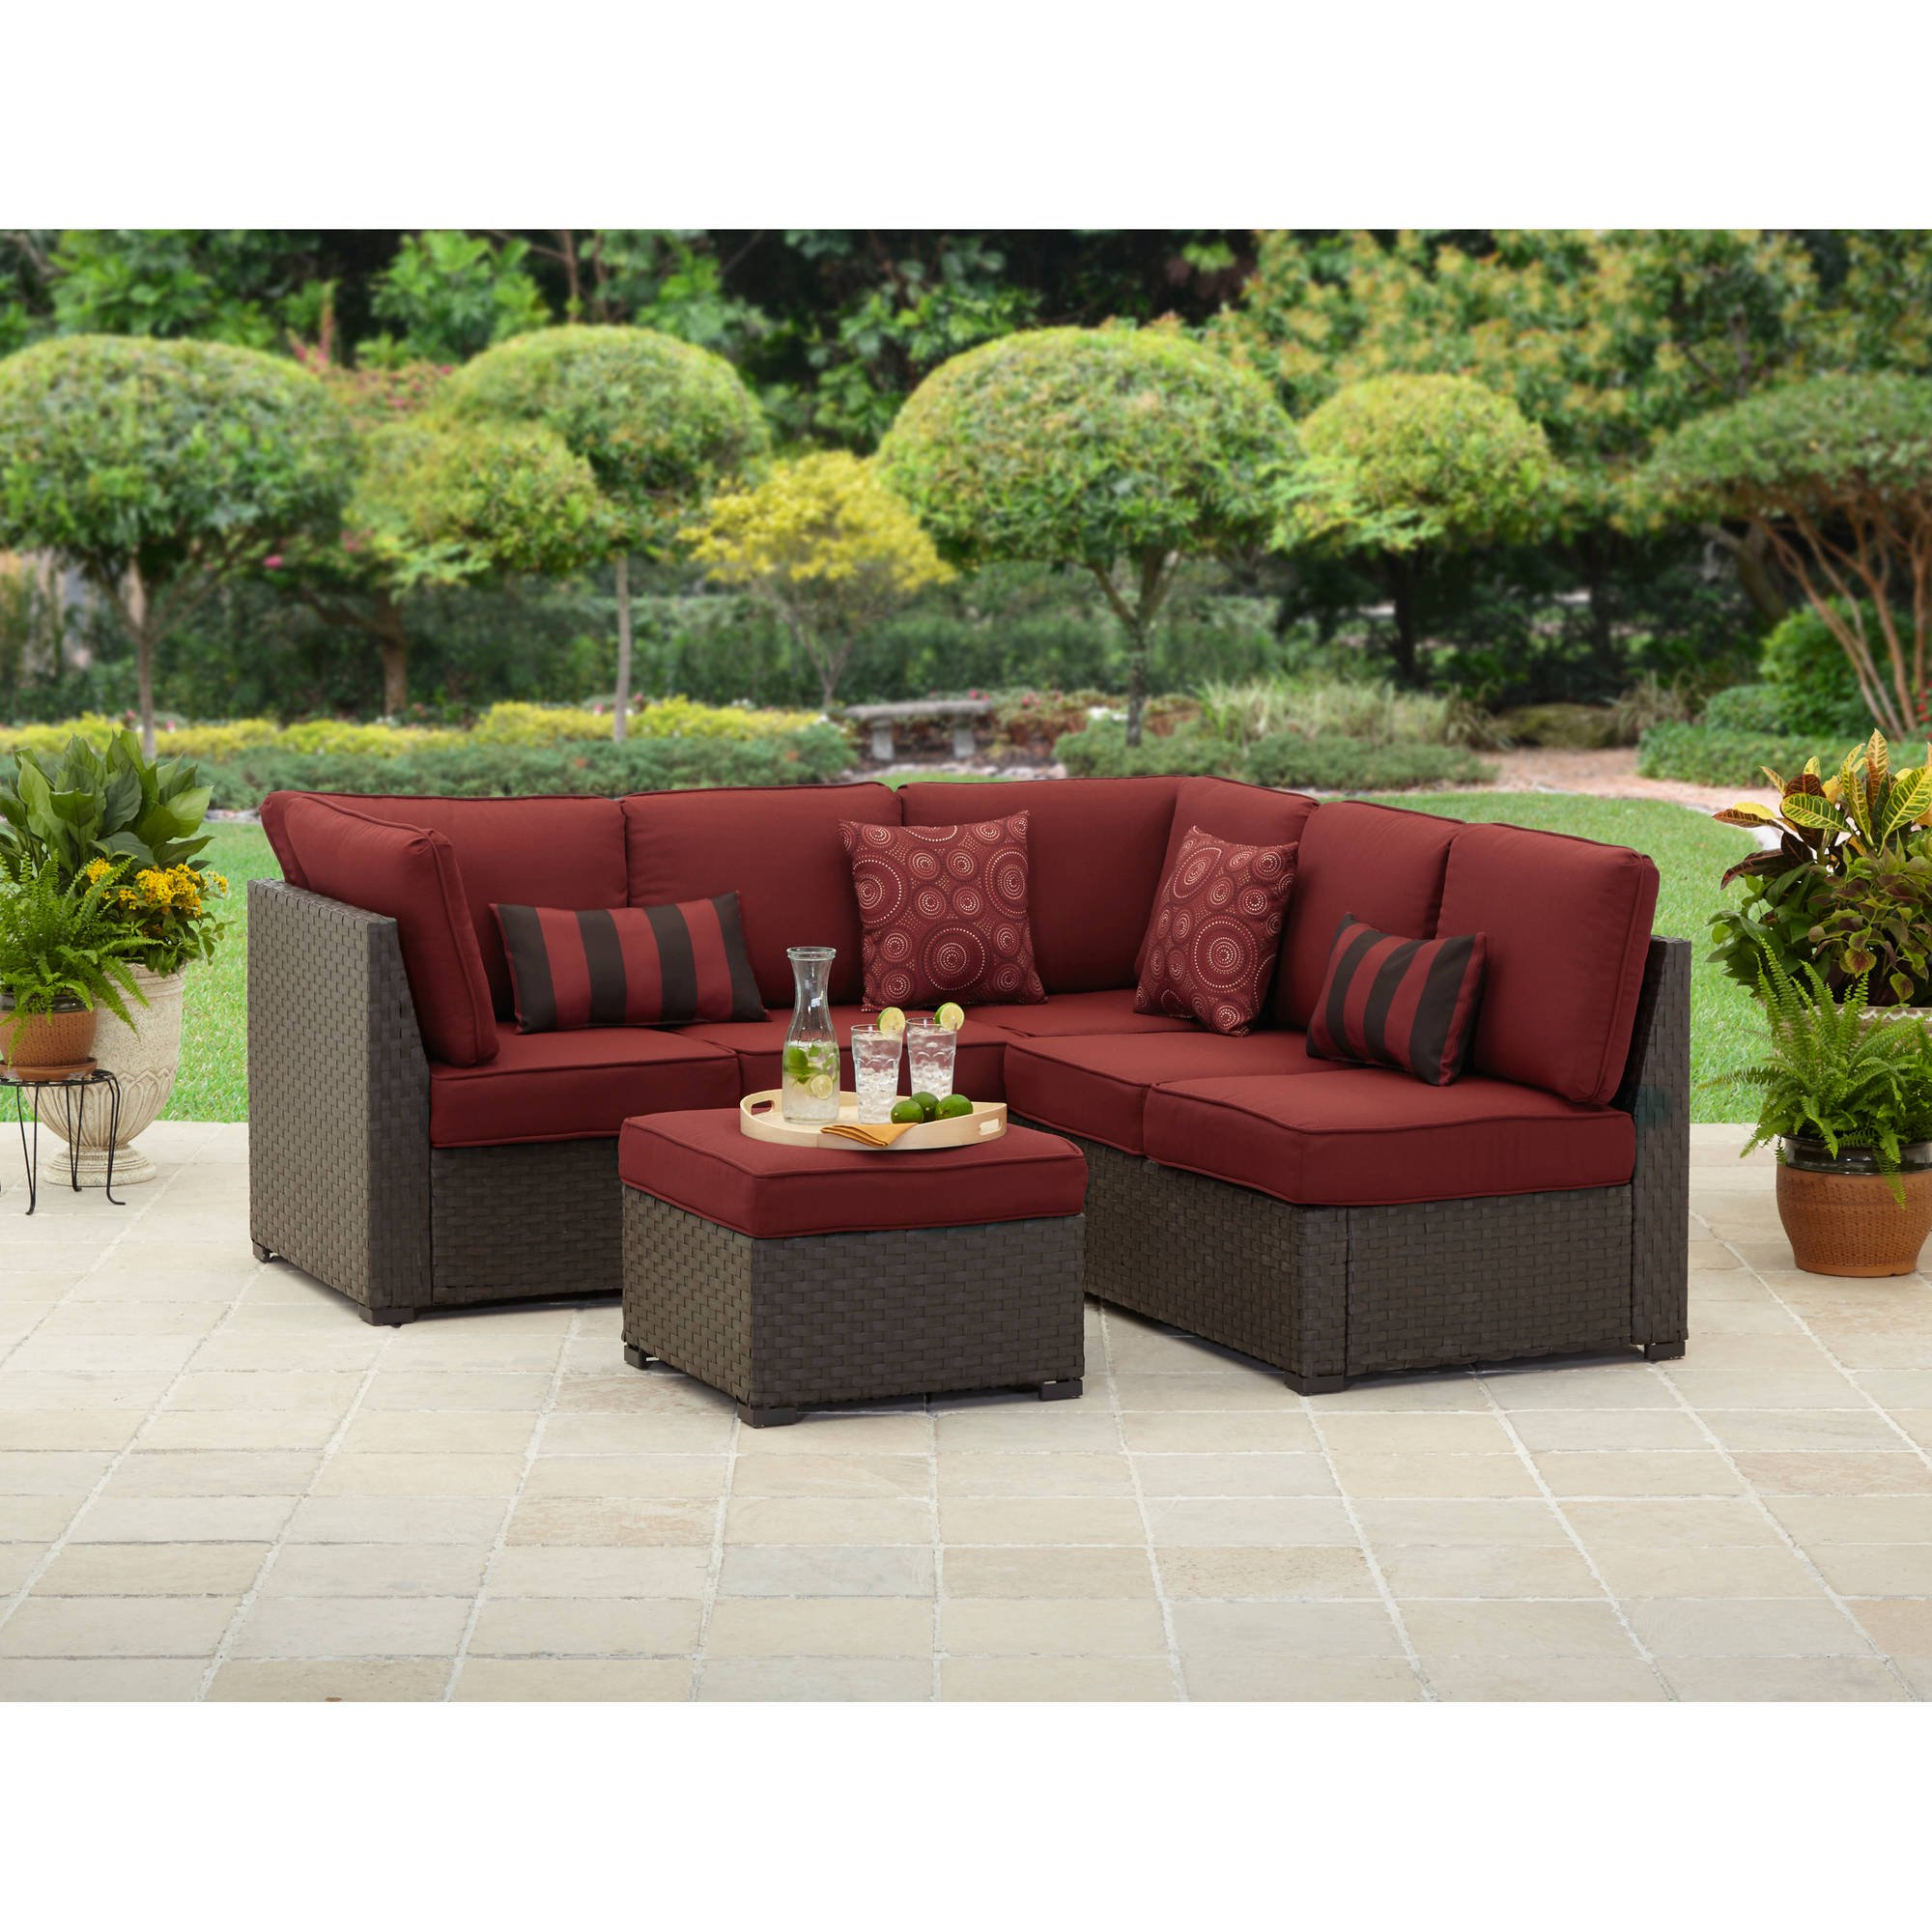 better homes and gardens rush valley 3piece outdoor sectional sofa set seats 5 - Outdoor Sectionals